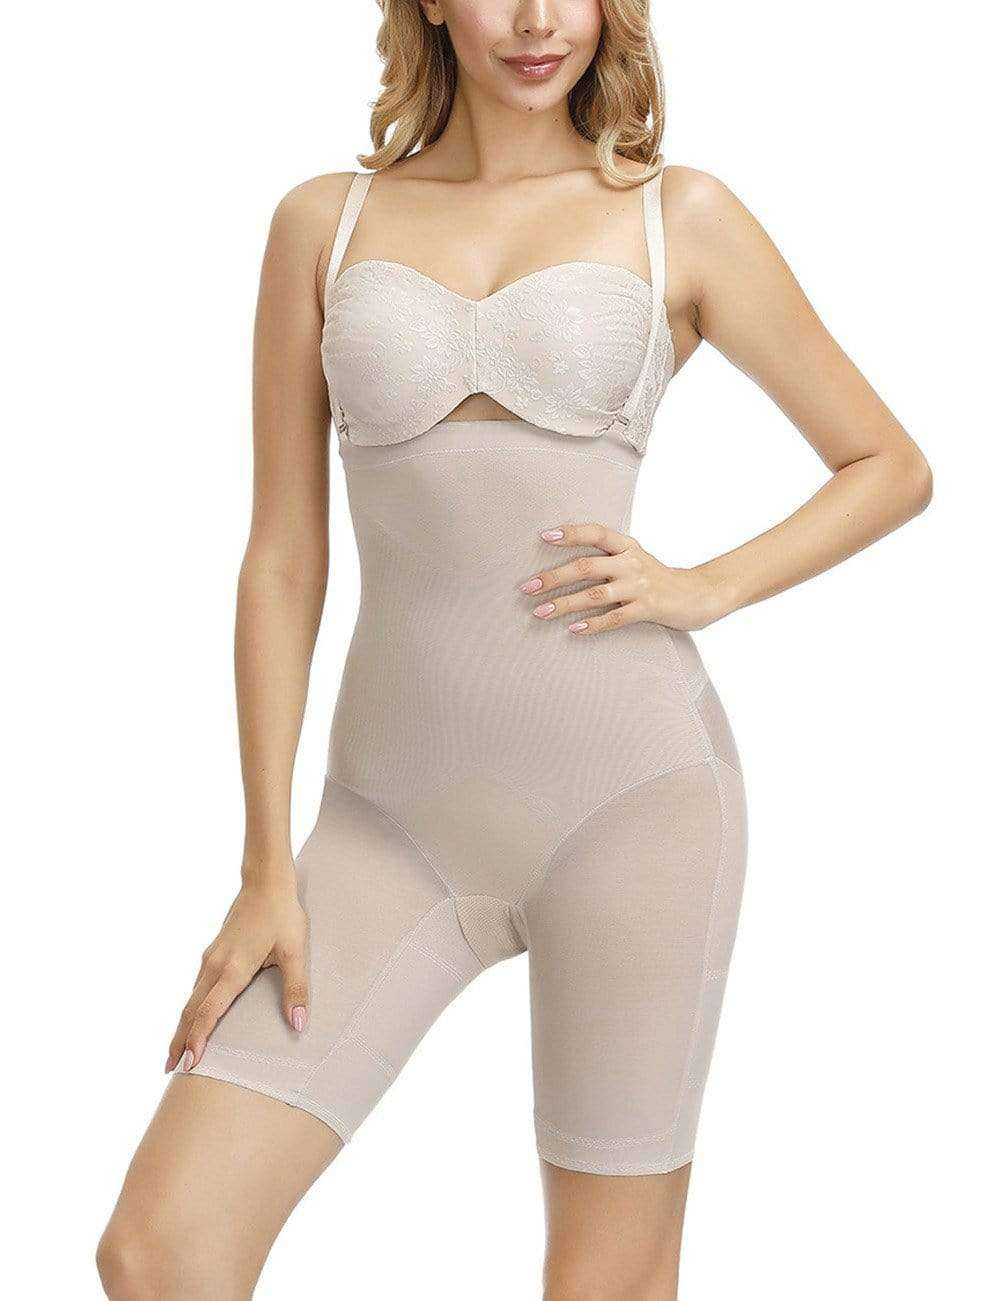 Nude Cross Crotchless Booty Lifting Cross Body Shaper